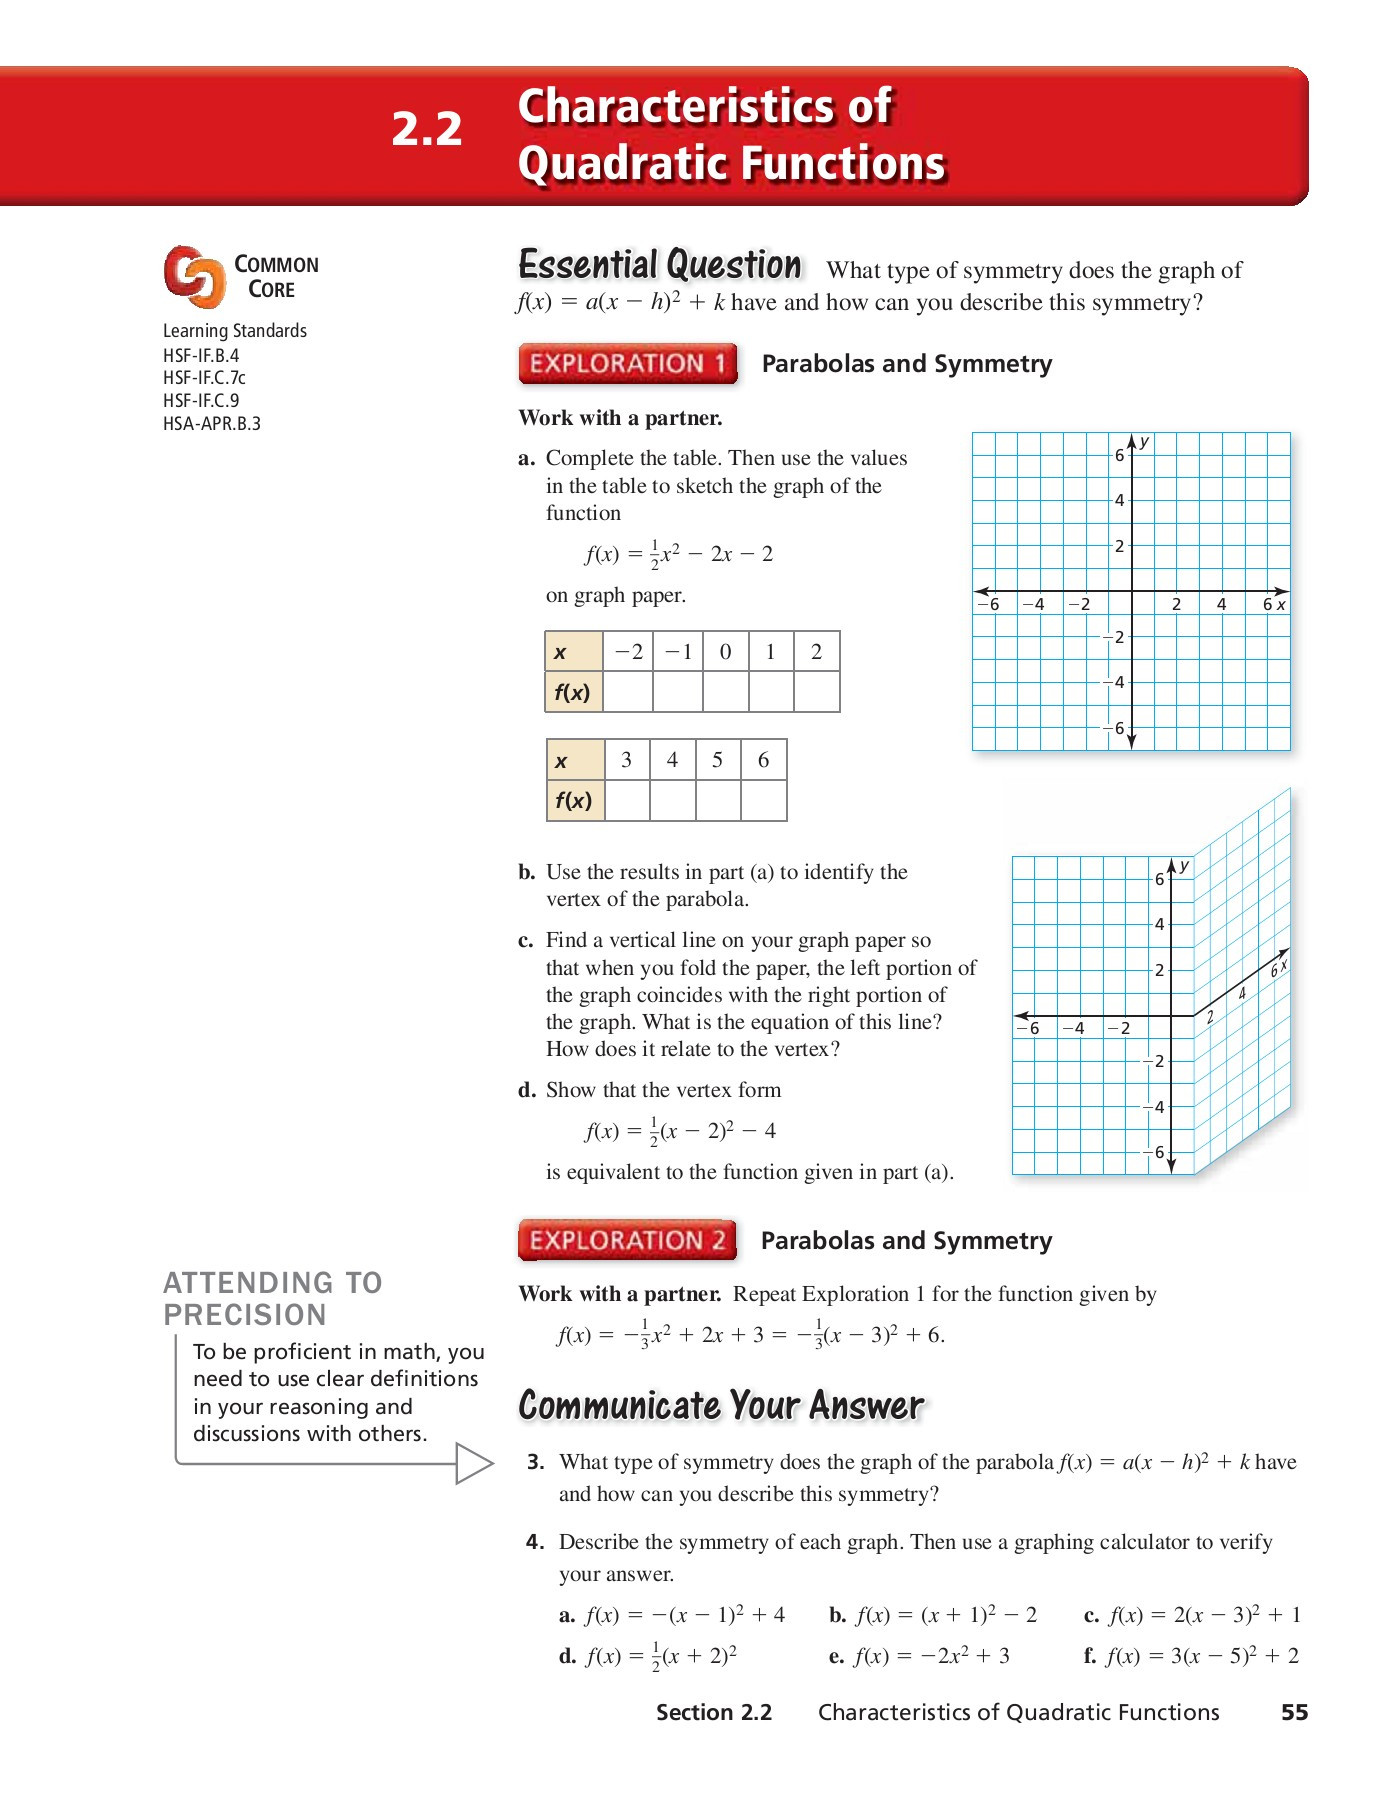 Characteristics Of Quadratic Functions Worksheet